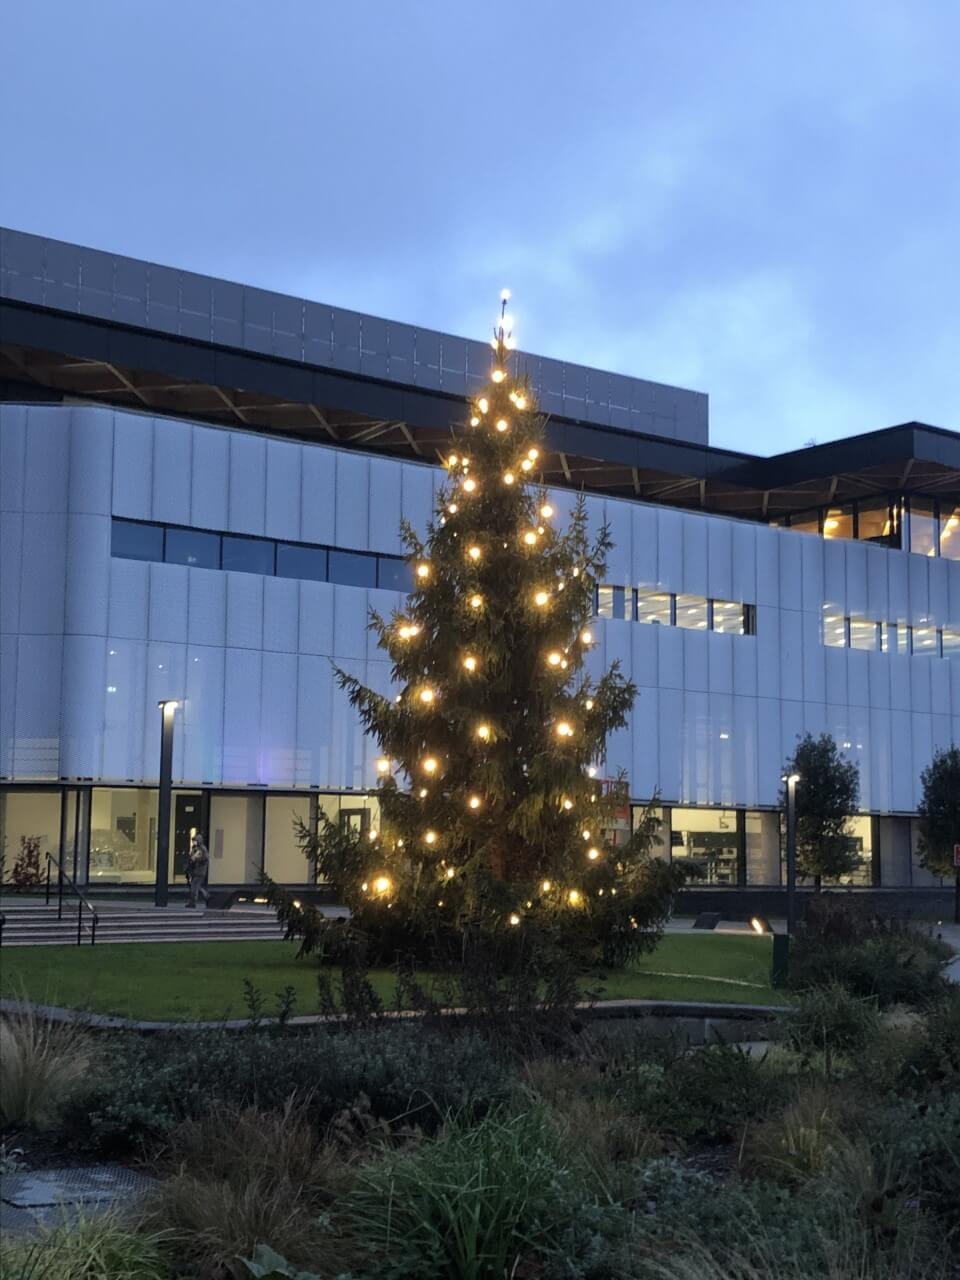 Covid tests, Christmas trees, and my last ever term 1 at Warwick